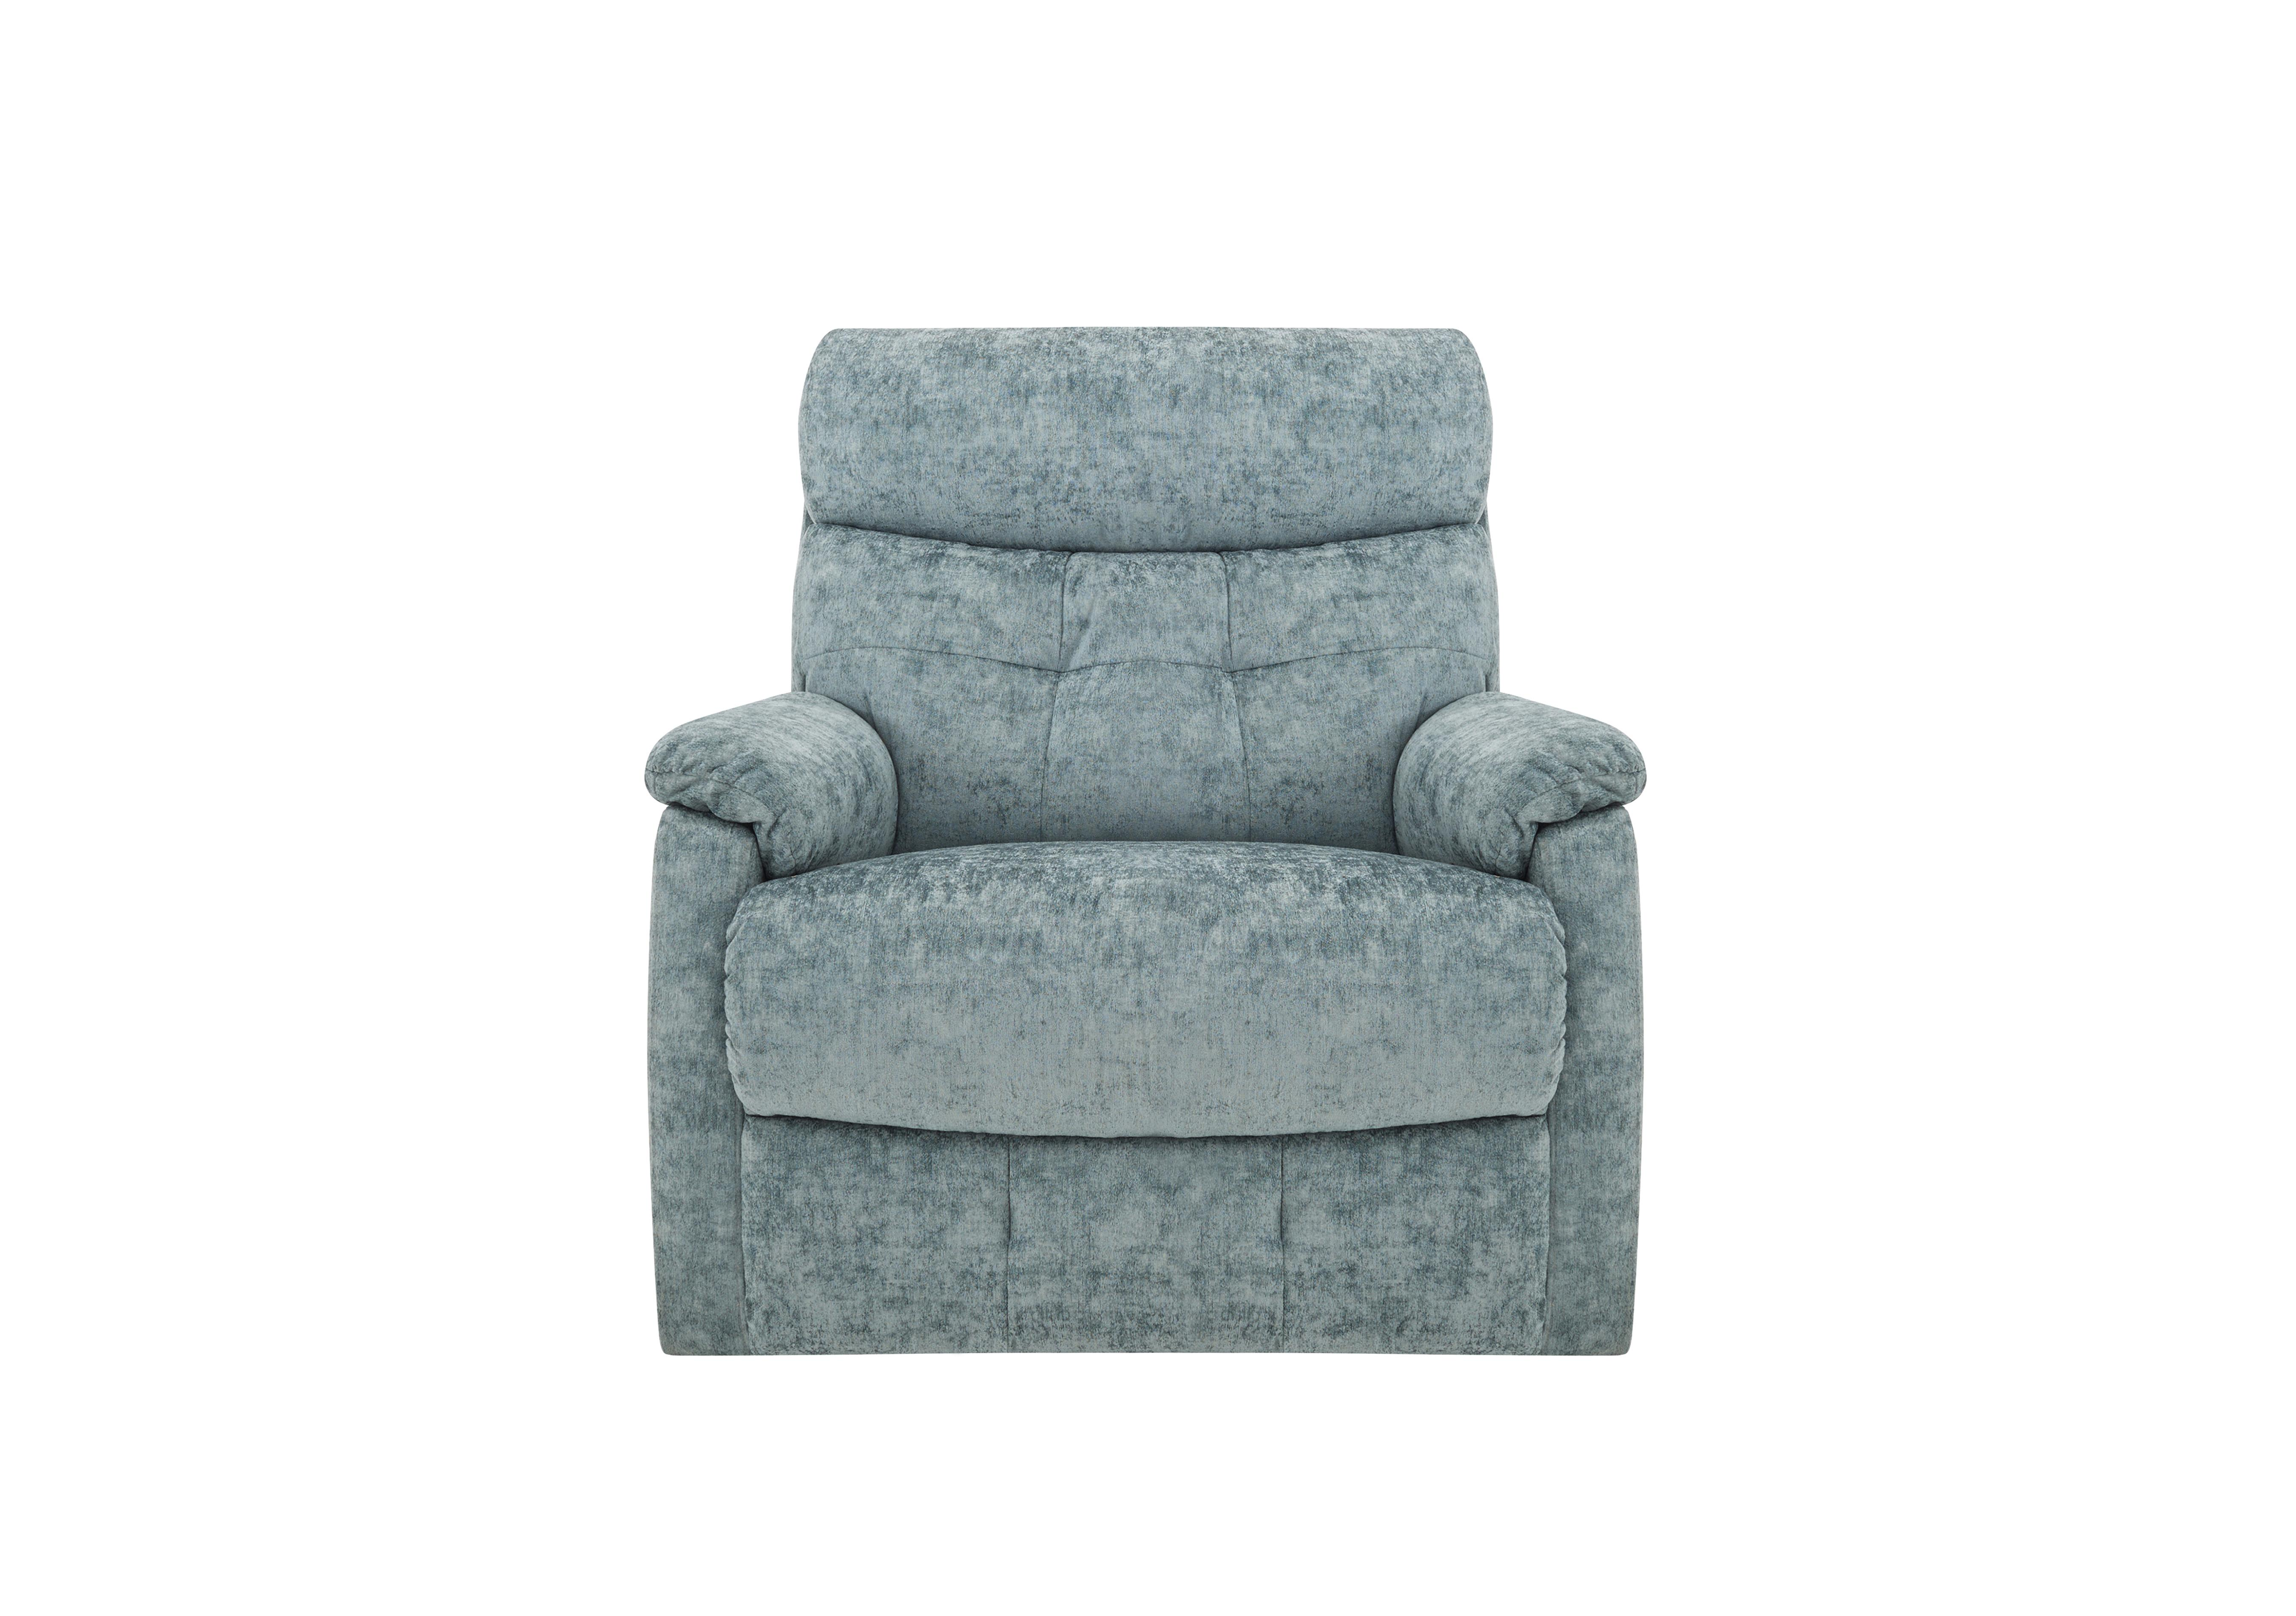 blue striped sofa uk leather set with wood trim fabric armchairs patterned furniture village